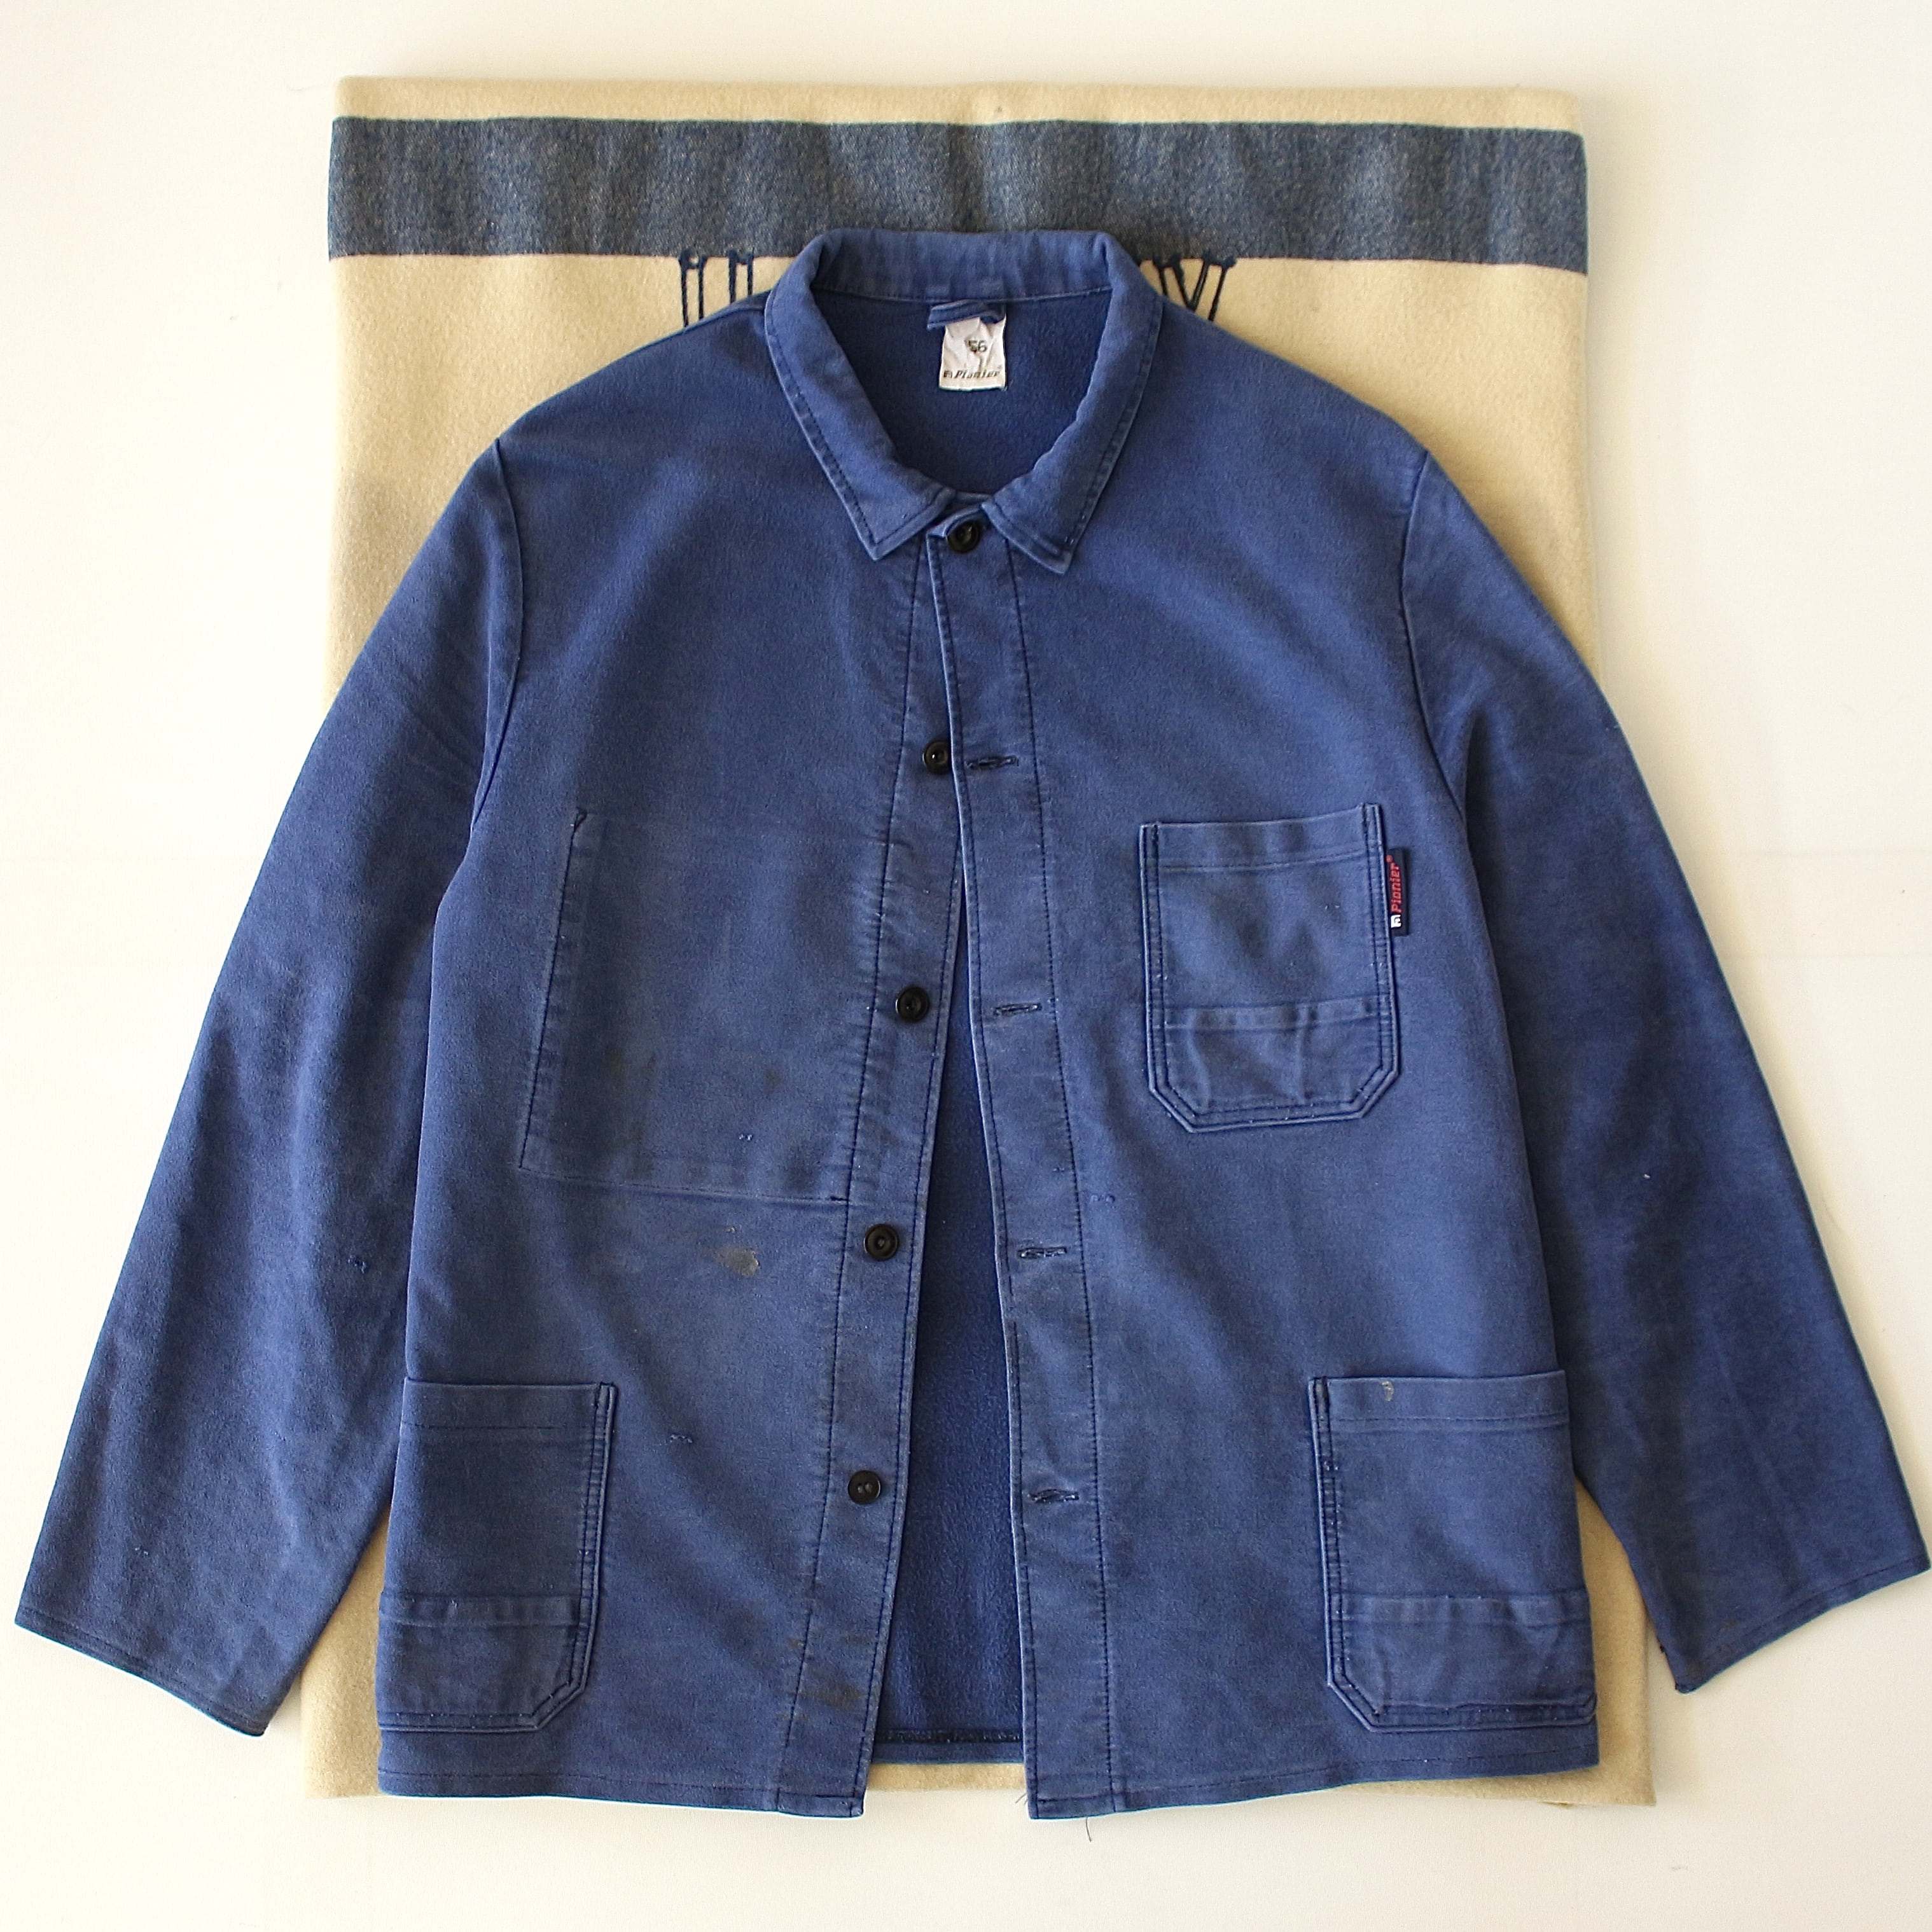 1950-60's PIONEER Moleskin French Work Chore Jacket (105size)